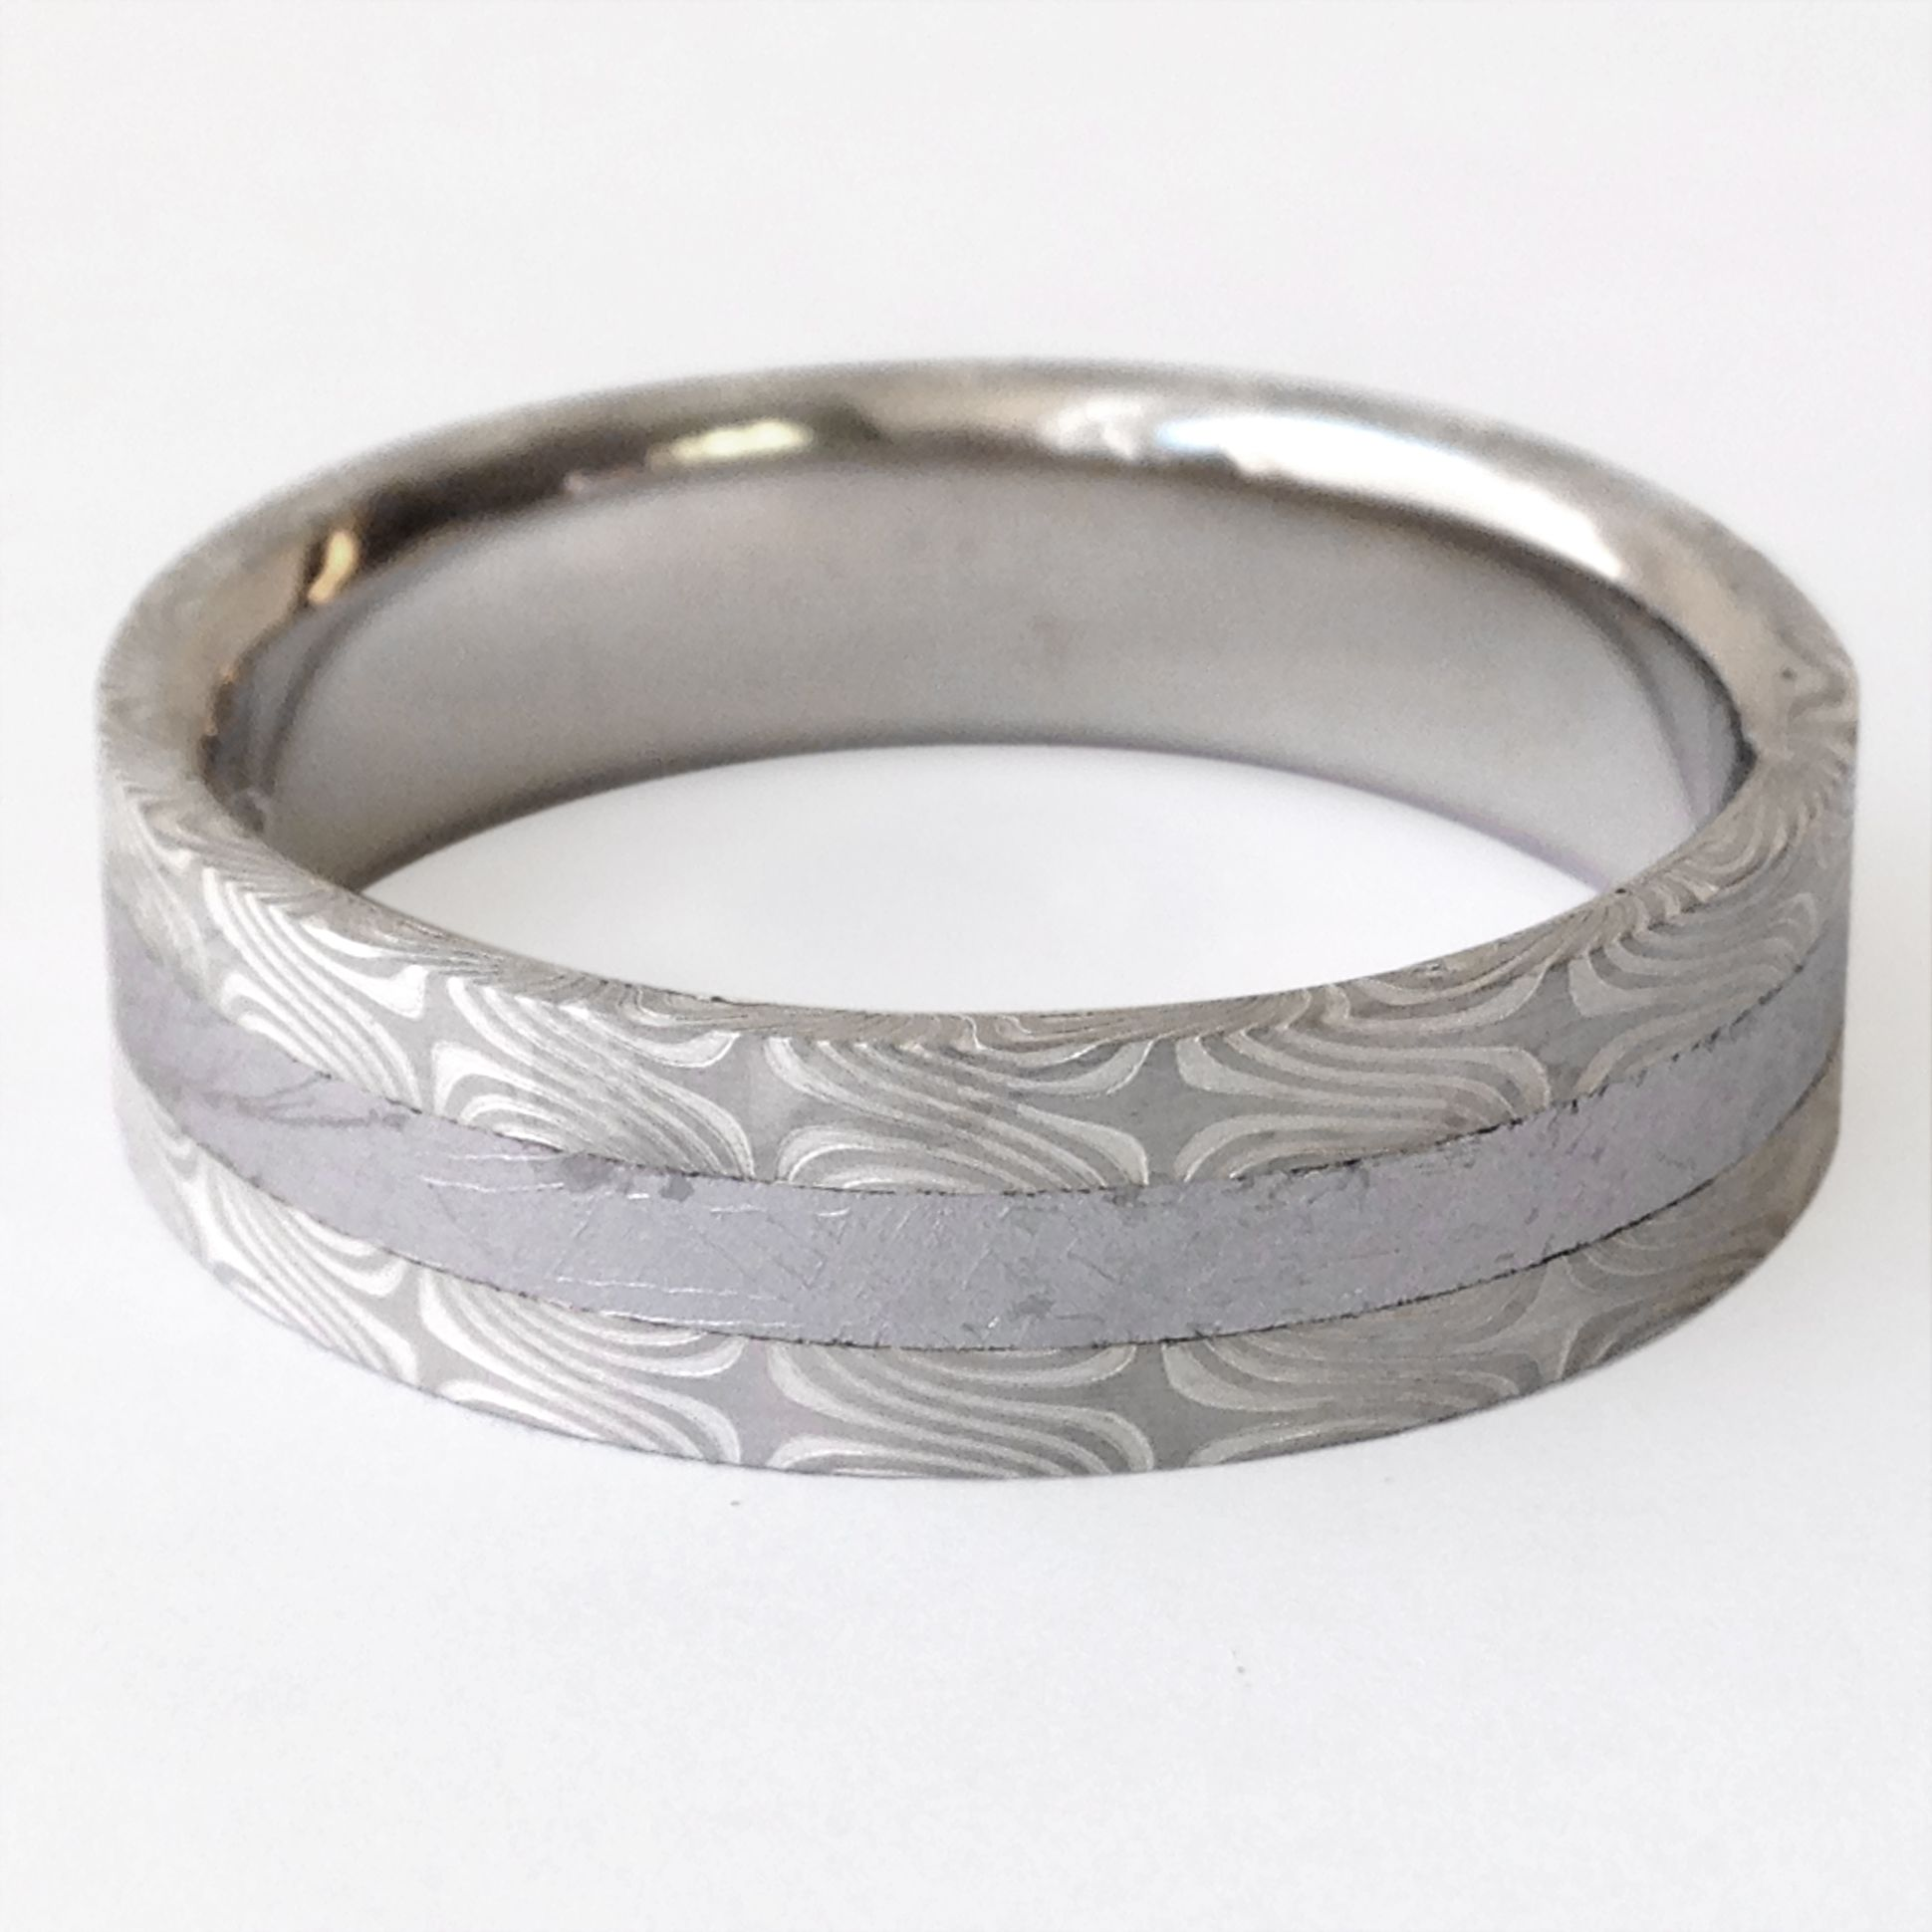 mokume gane wedding bands Mokume gane wedding band inlaid with meteorite iron By Chris Ploof